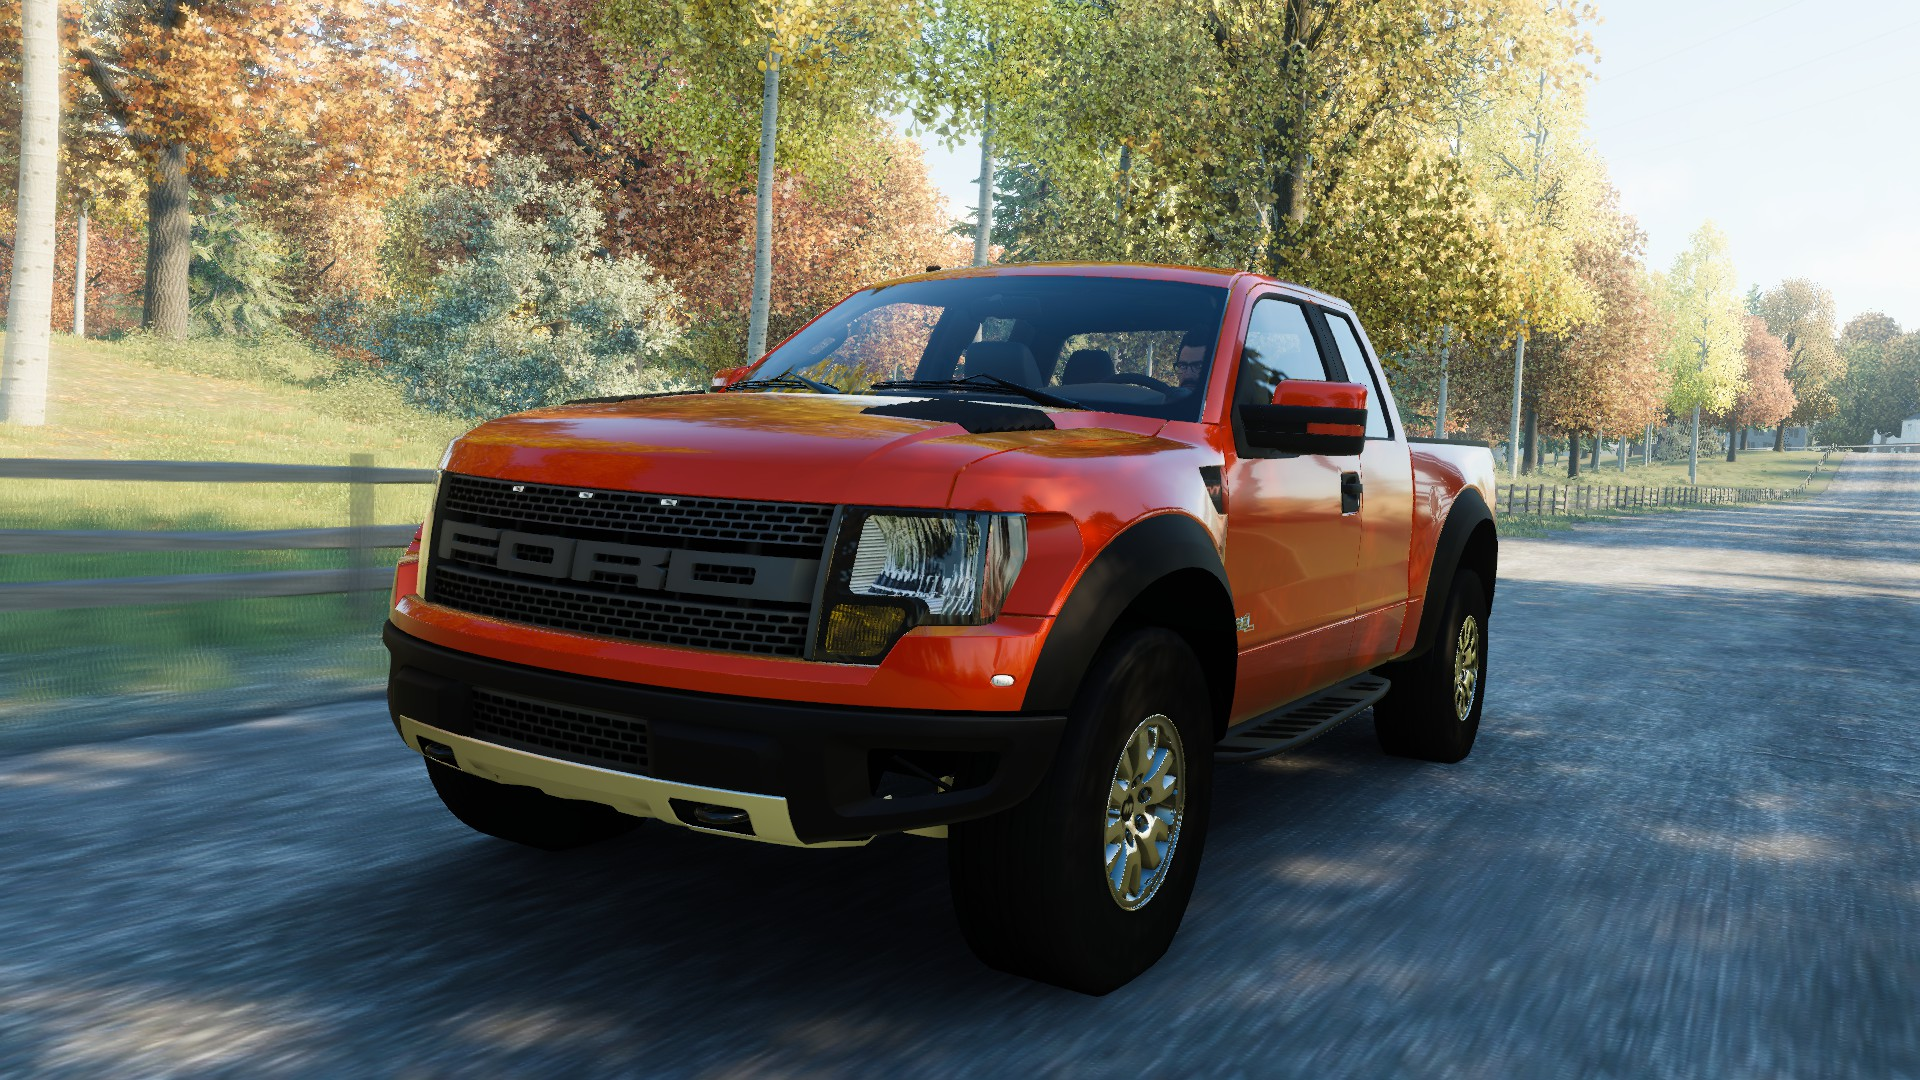 Ram Srt 10 >> 2010 Ford F-150 SVT Raptor | THE CREW Wiki | FANDOM powered by Wikia